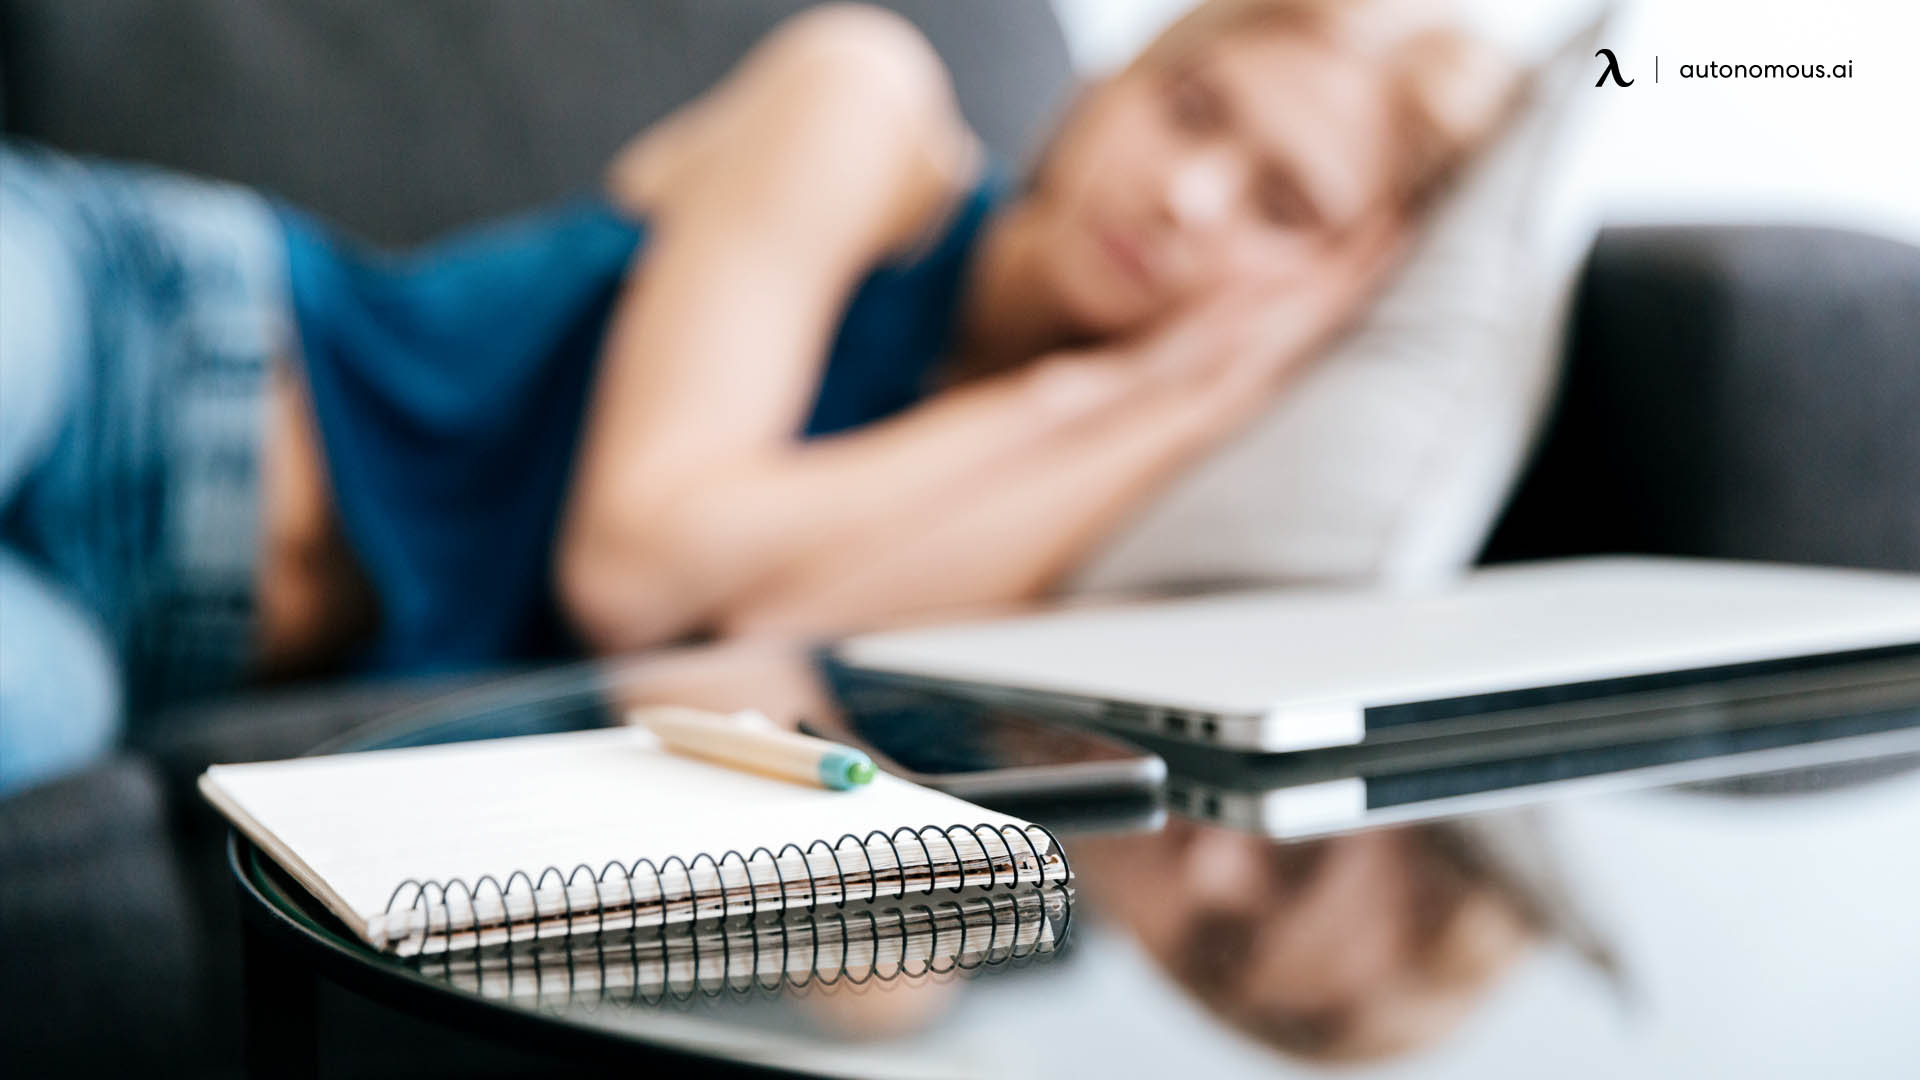 Taking a nap to improve your memory